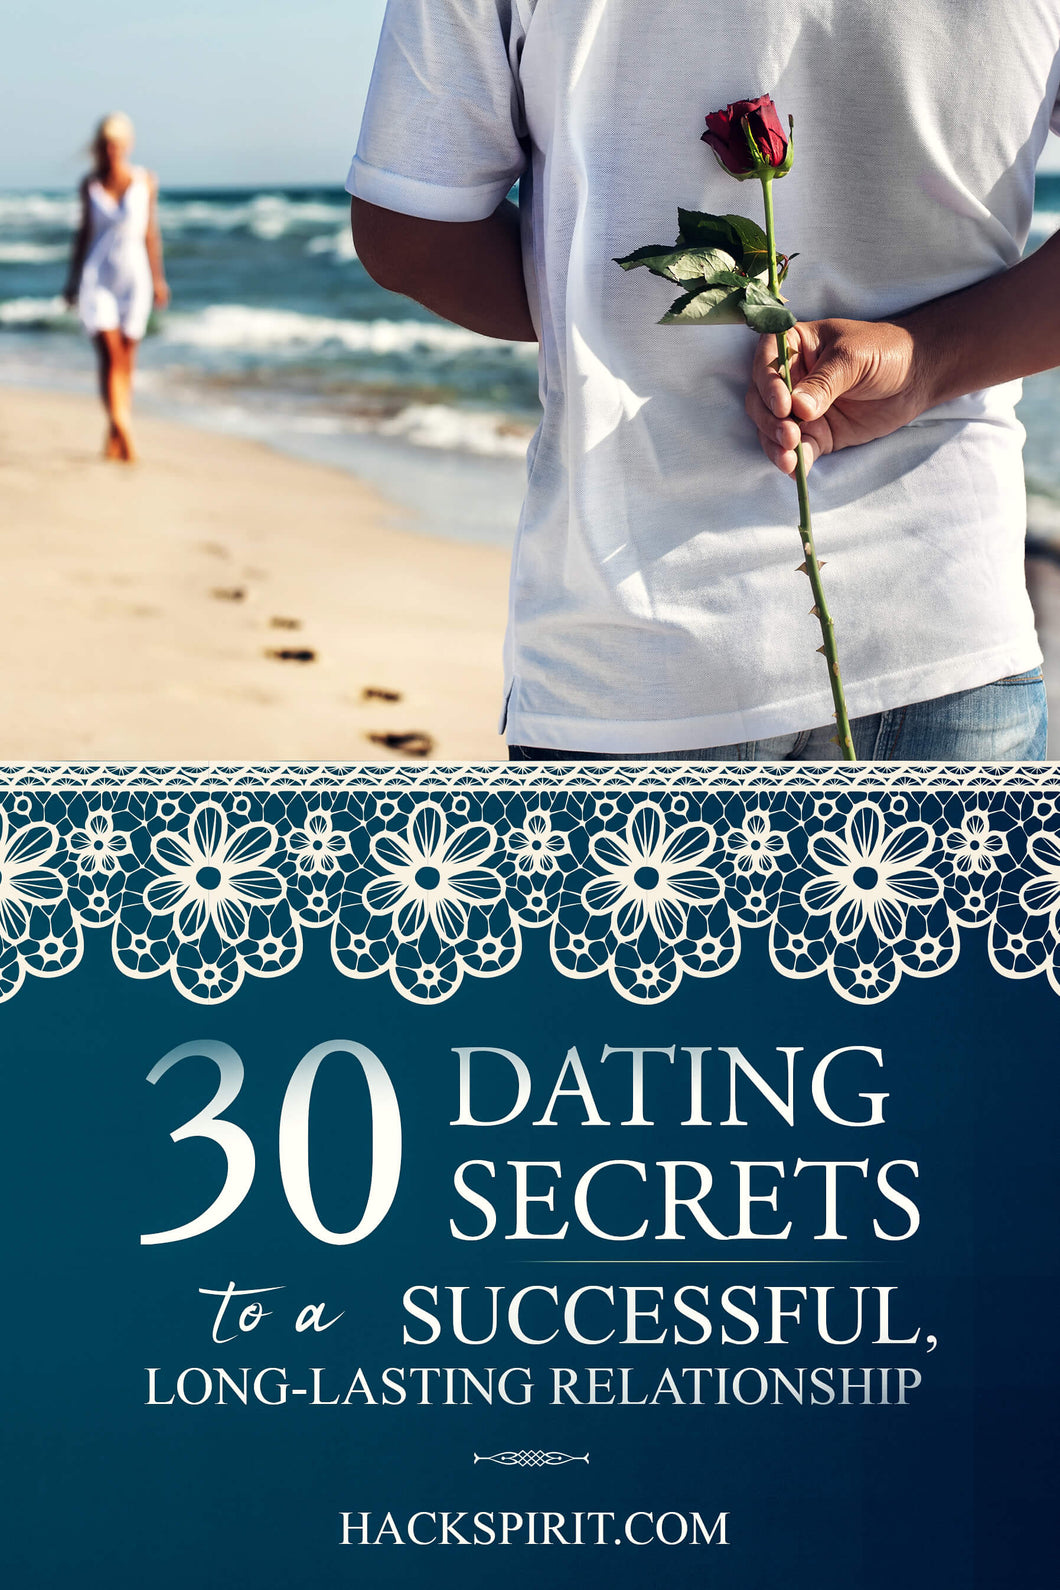 30 Dating Secrets to a Successful, Long-Lasting Relationship